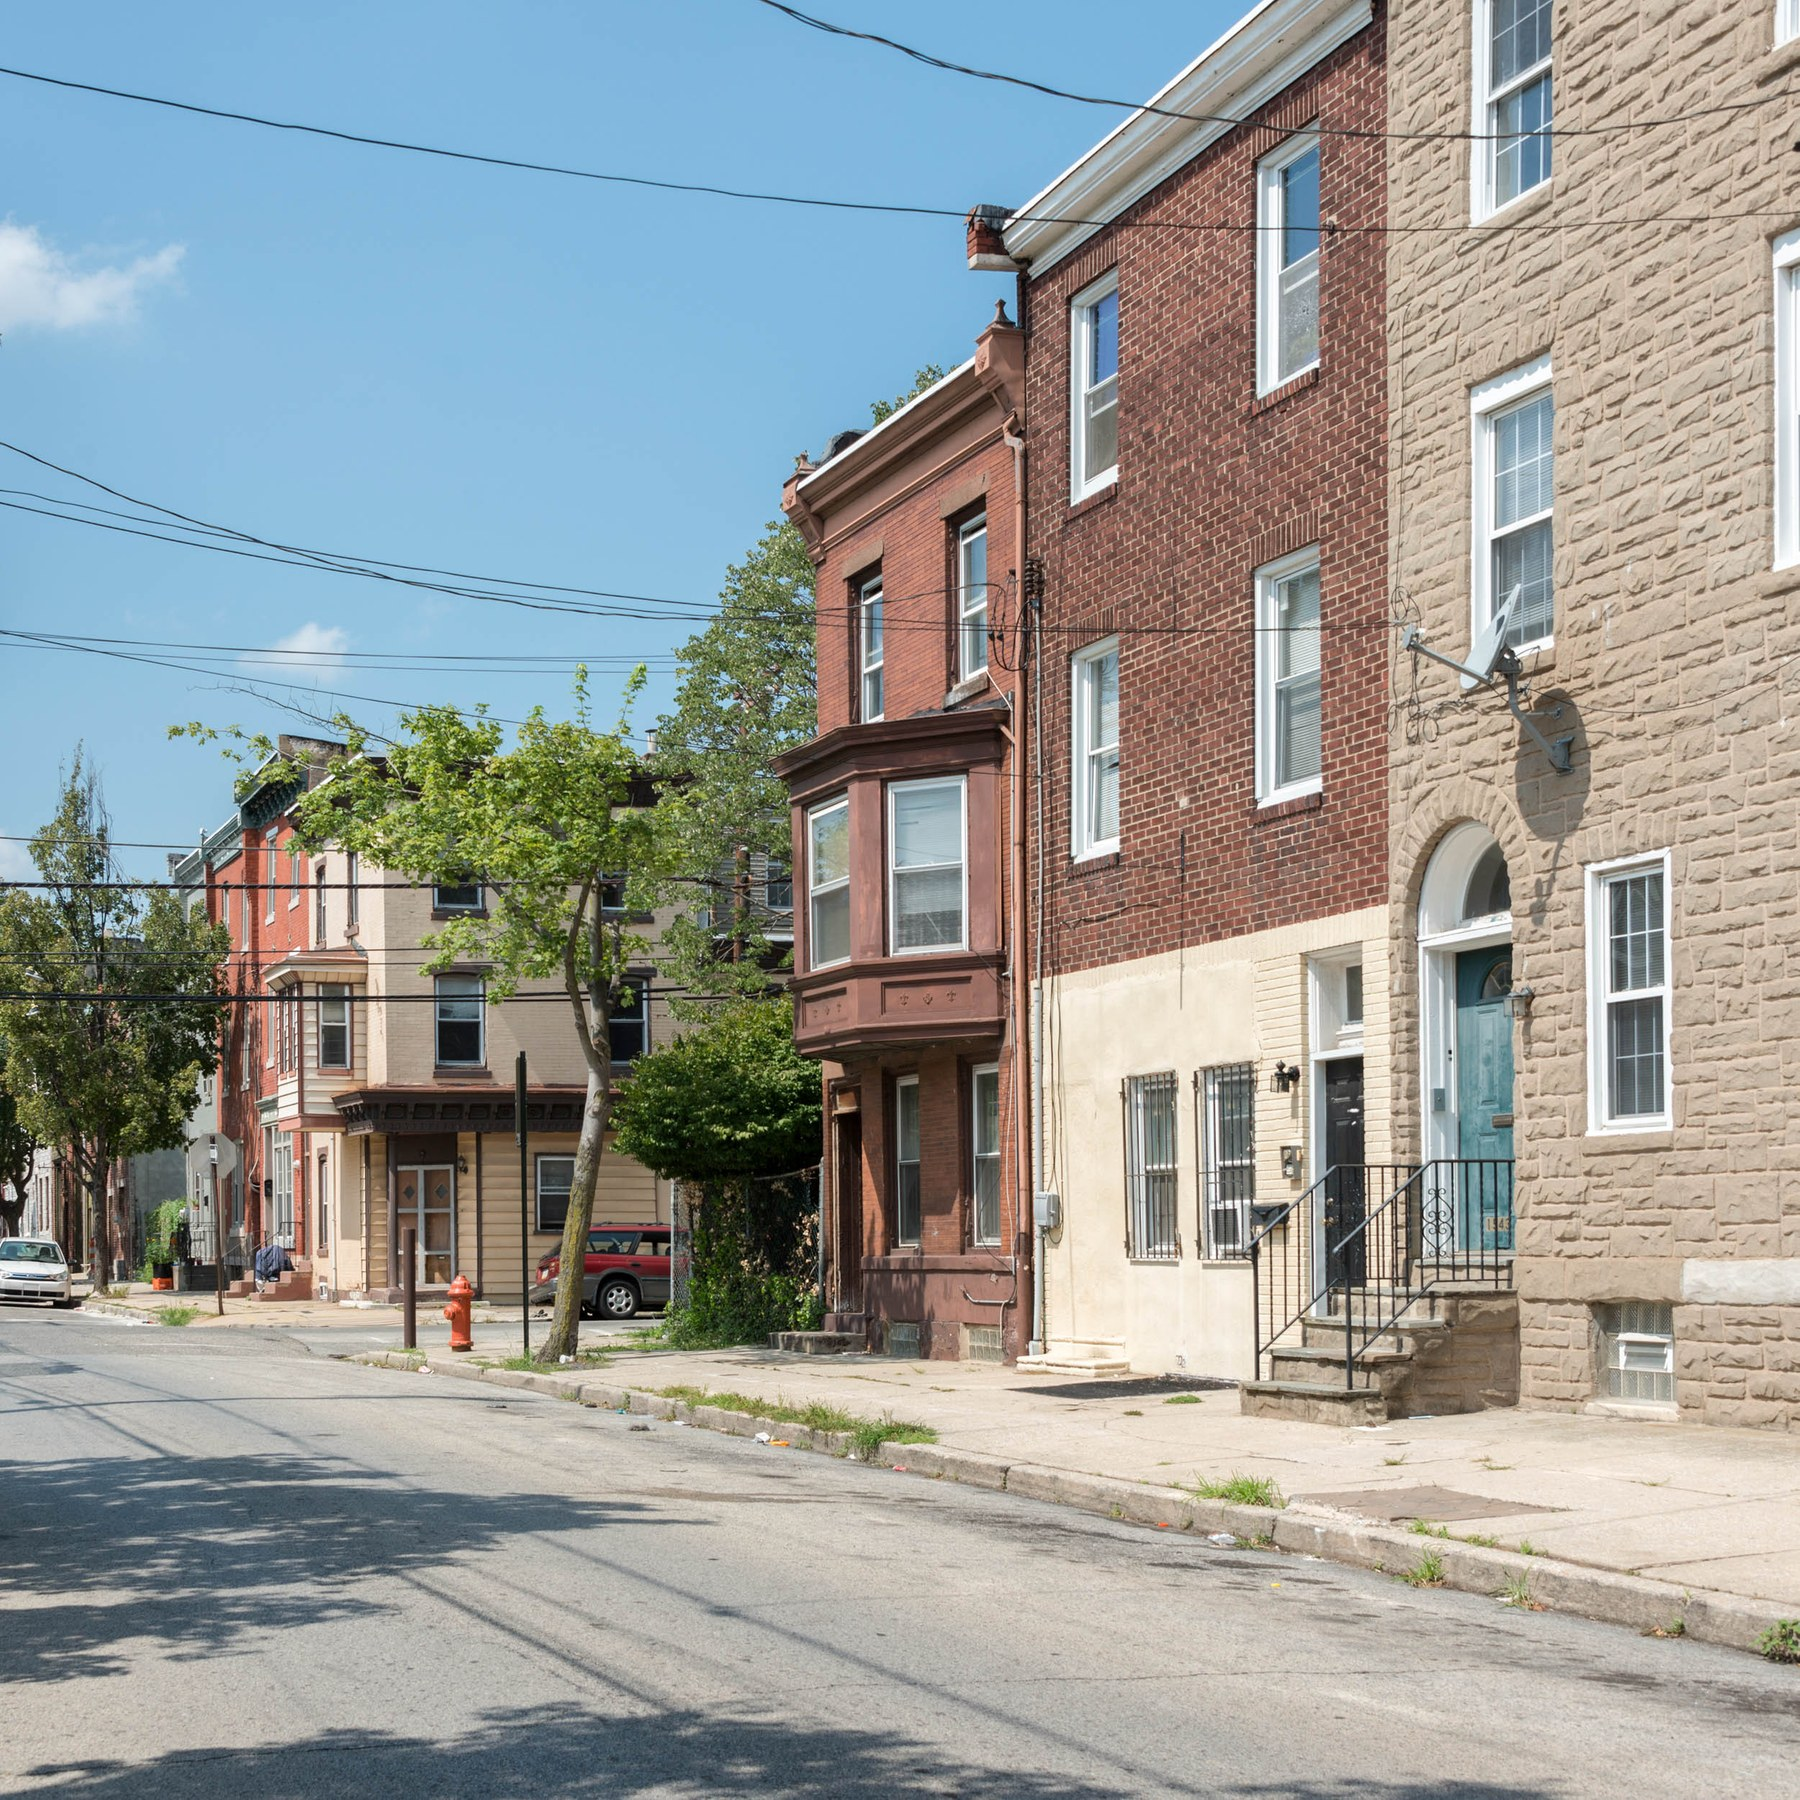 Apartments For Rent In Philly: North Central, Philadelphia PA - Neighborhood Guide